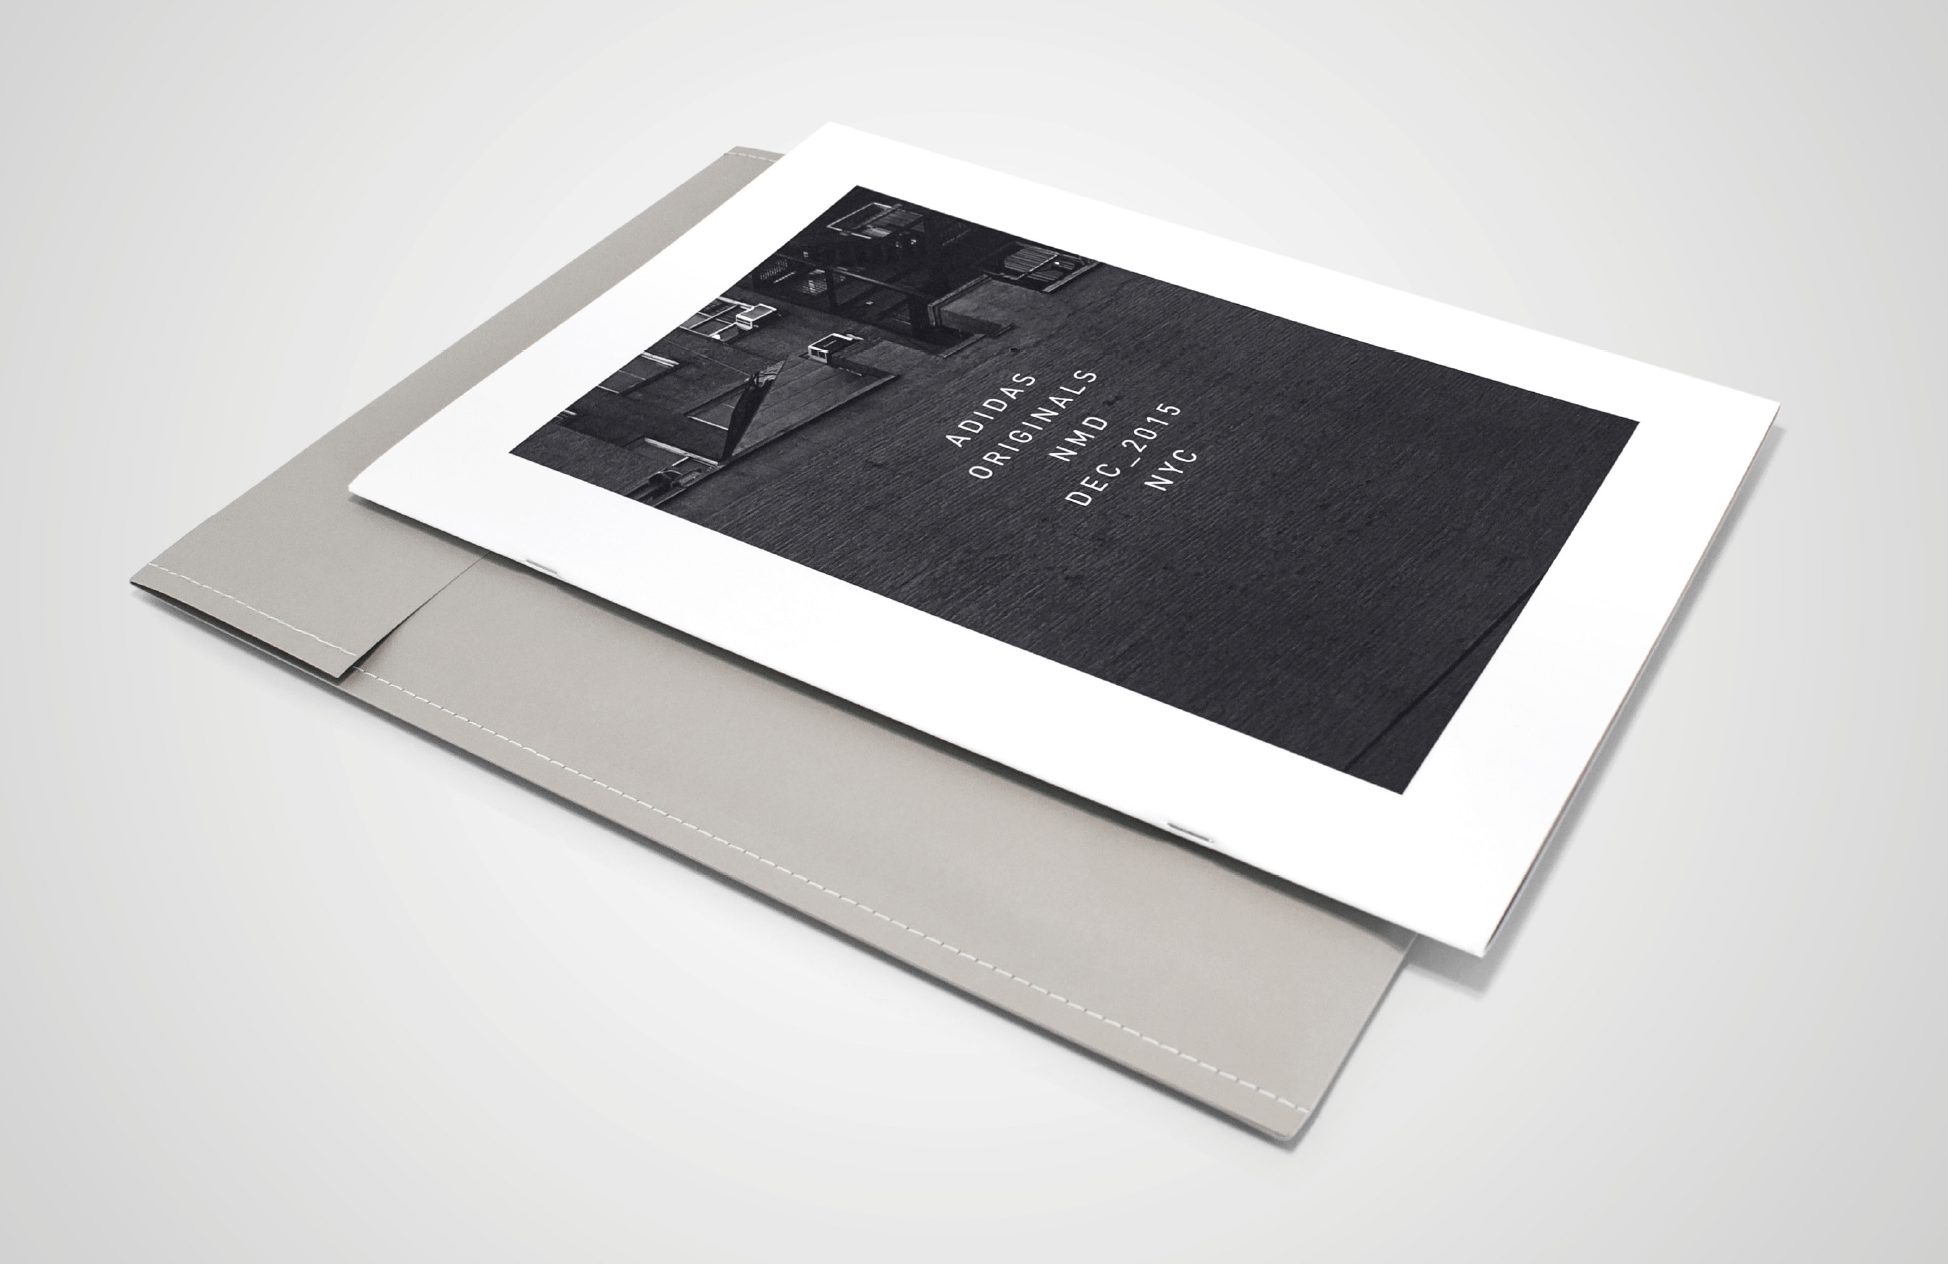 NMD_book_974x632.png